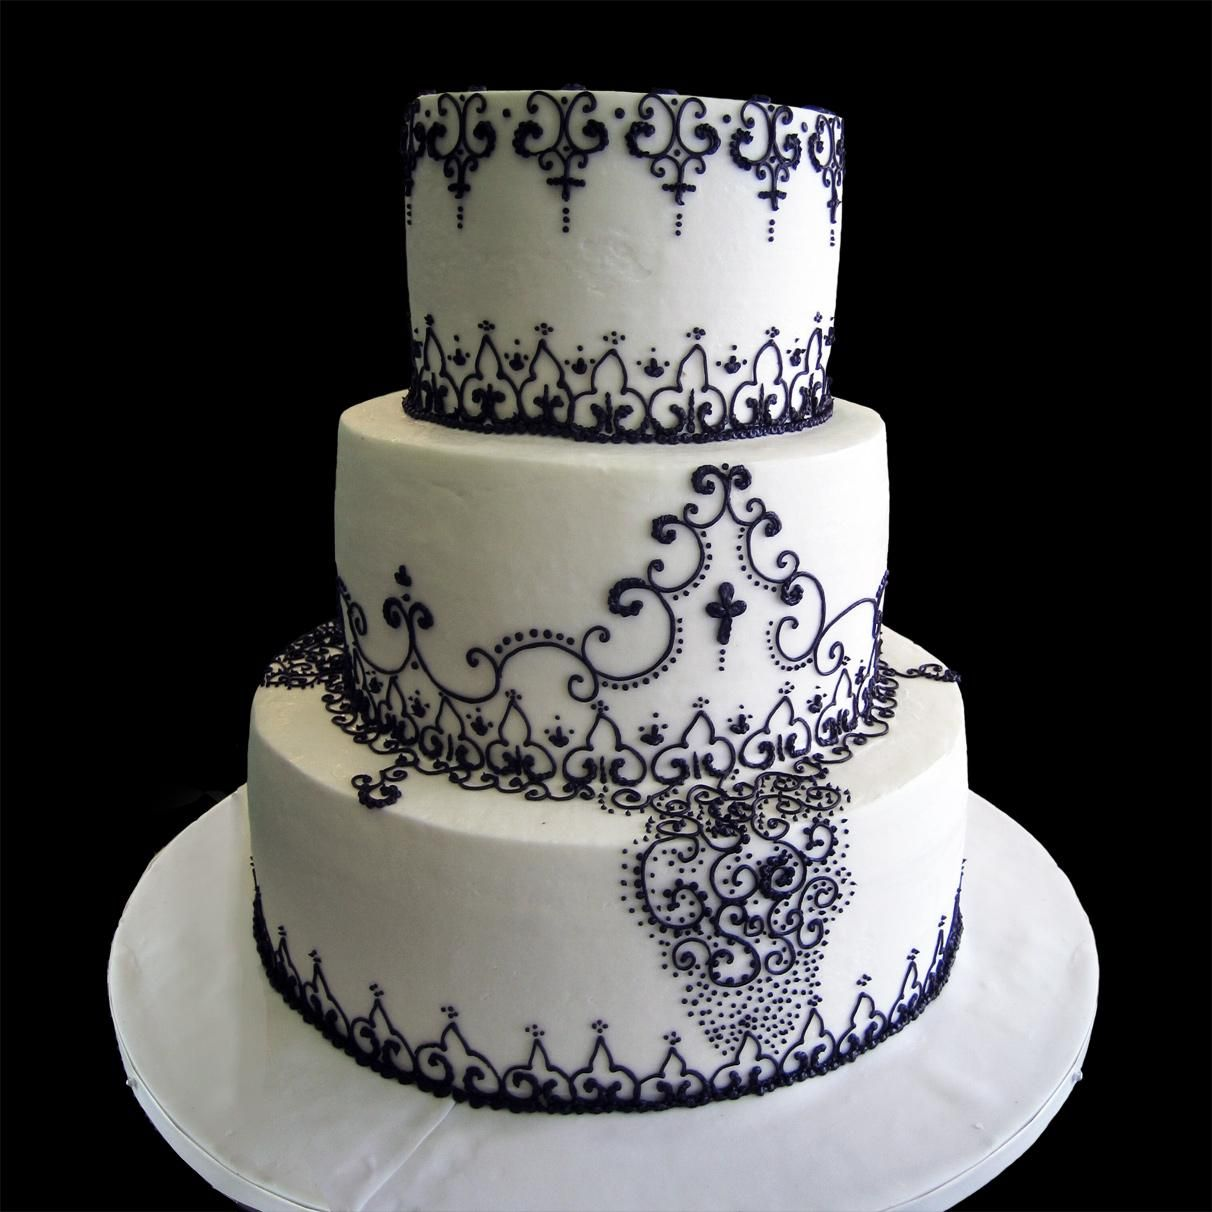 Merveilleux Black And White Scrolling Wedding Cake